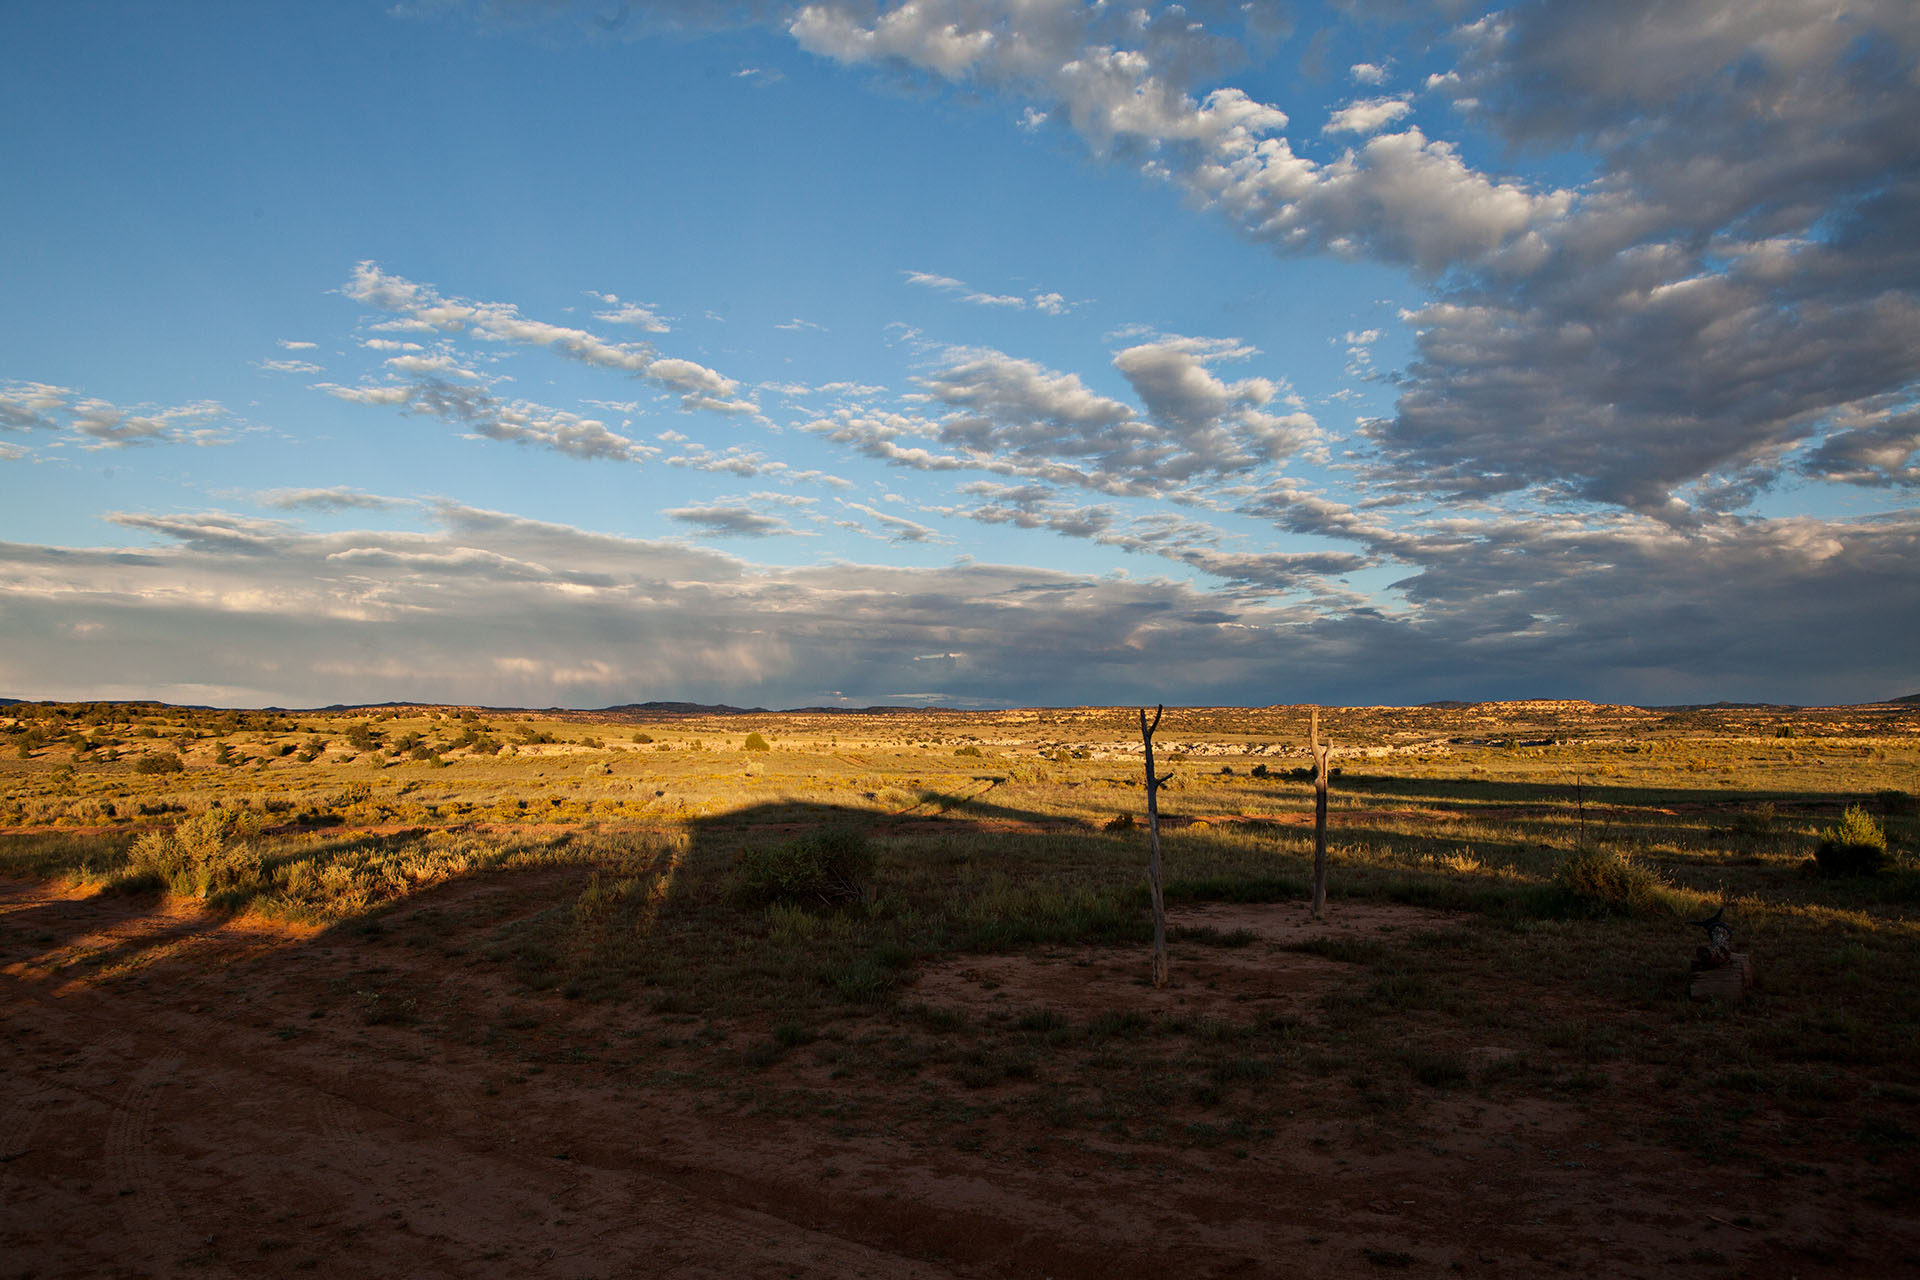 The wide open spaces of Black Mesa Arizona on the Navajo Reservation